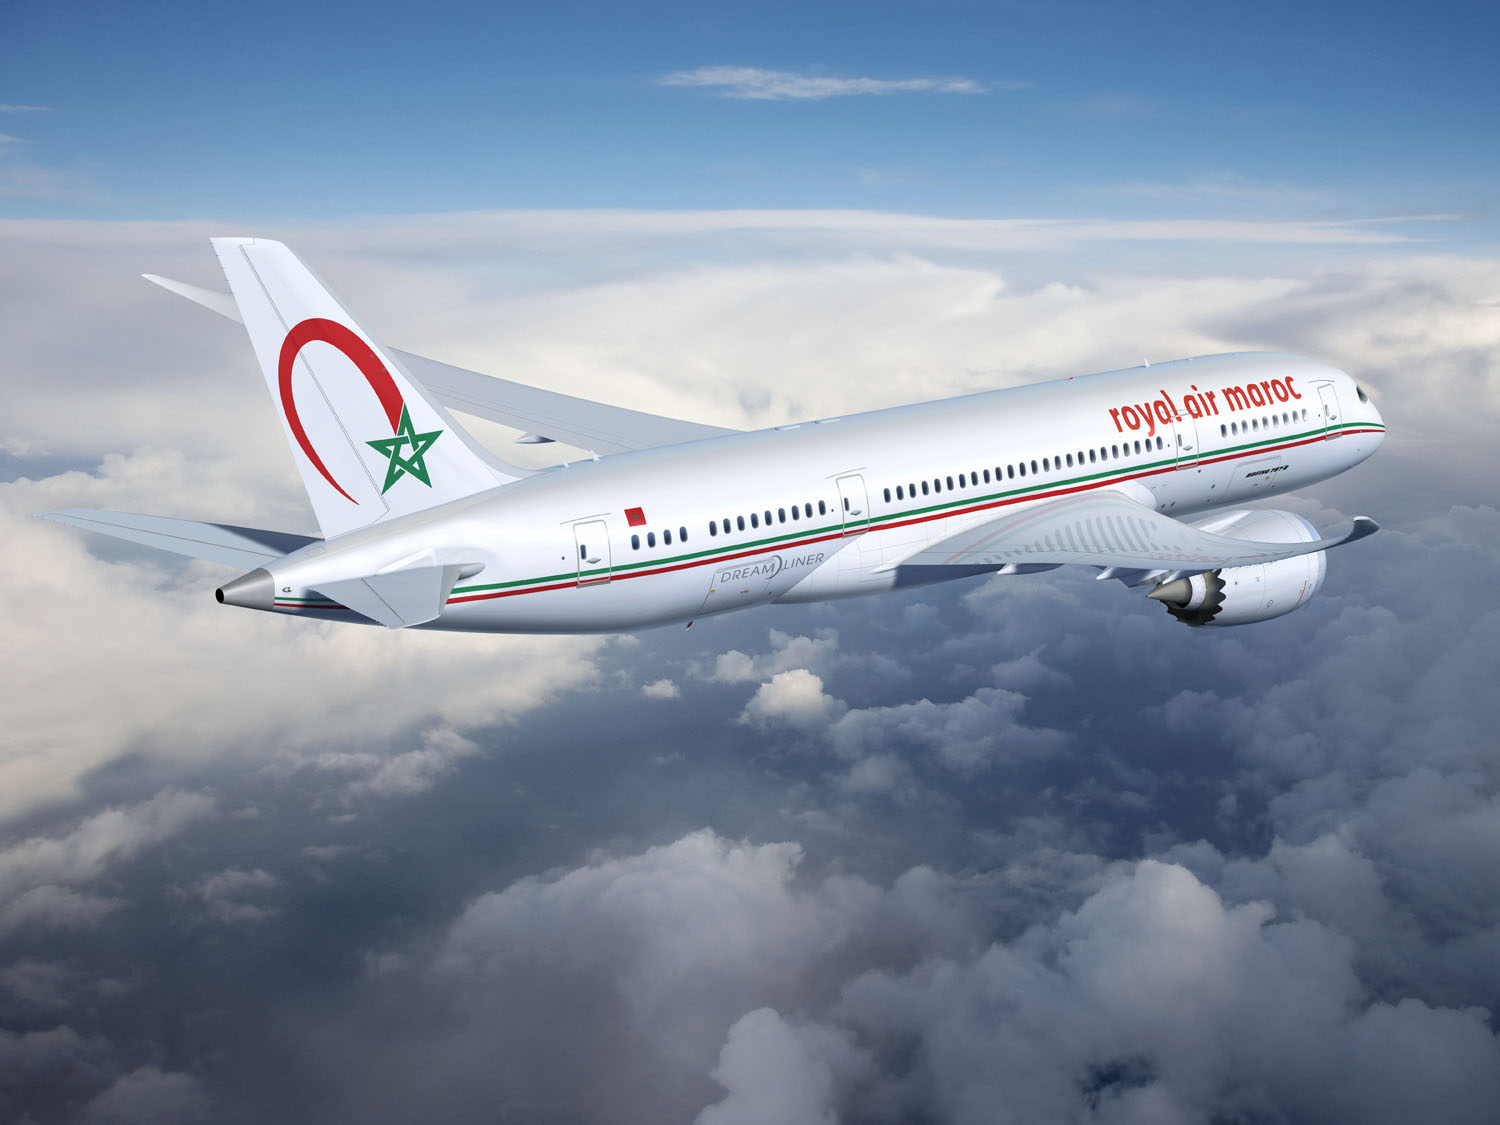 Royal Air Maroc joins Oneworld in 2020